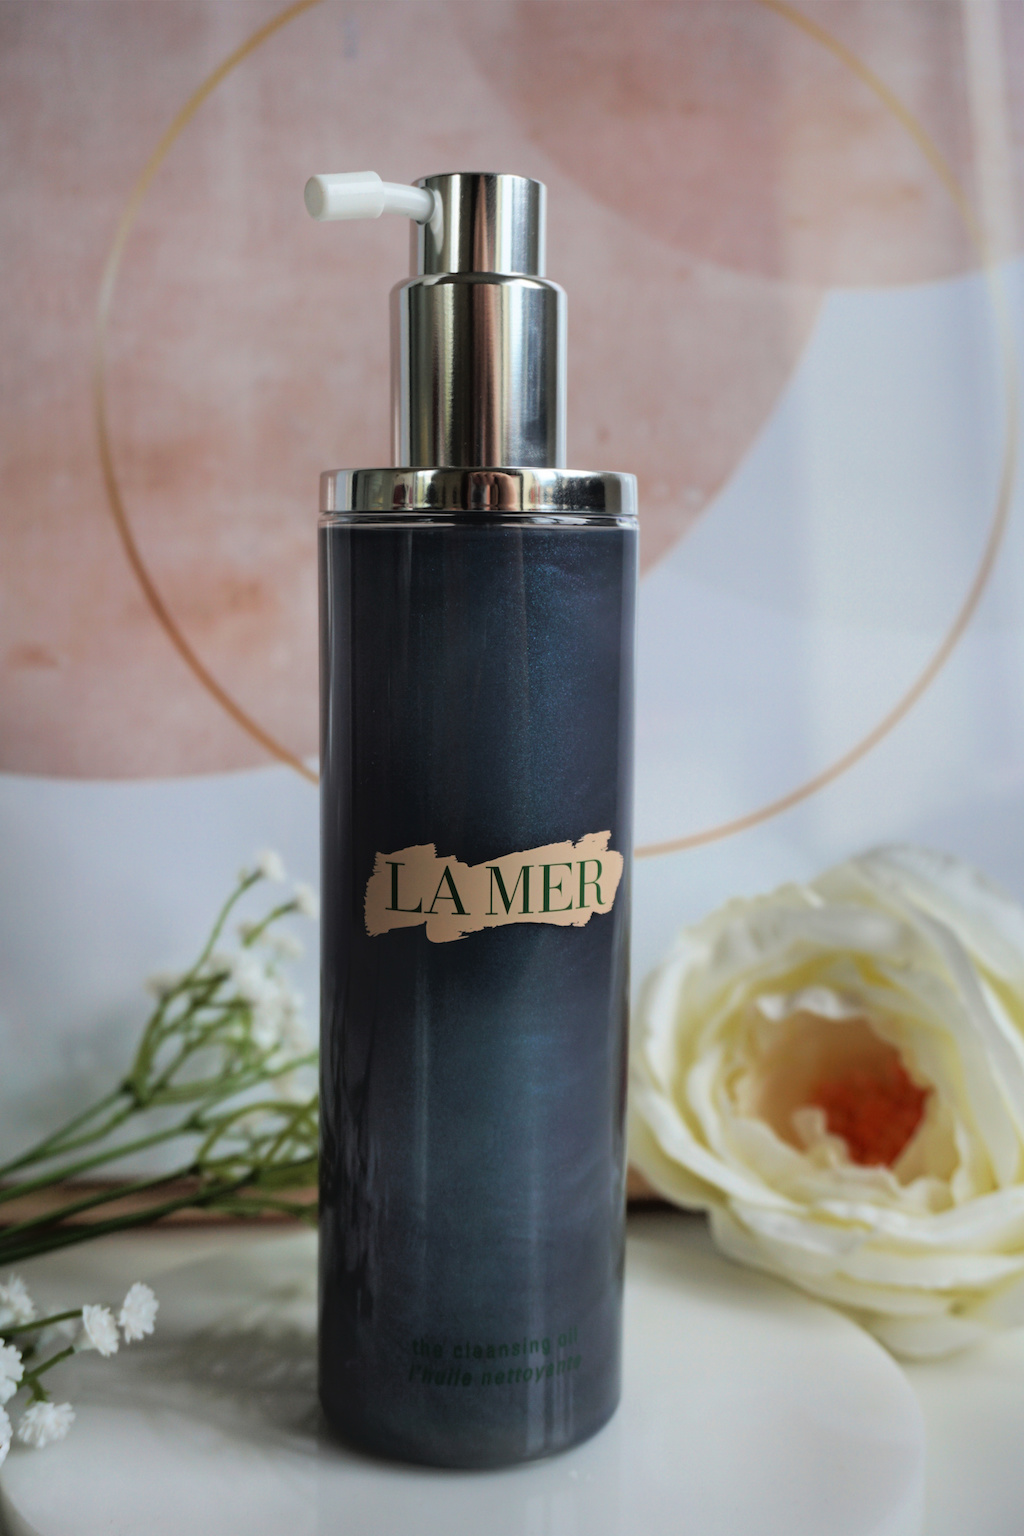 La Mer The Cleansing Oil Reinigingsolie Review